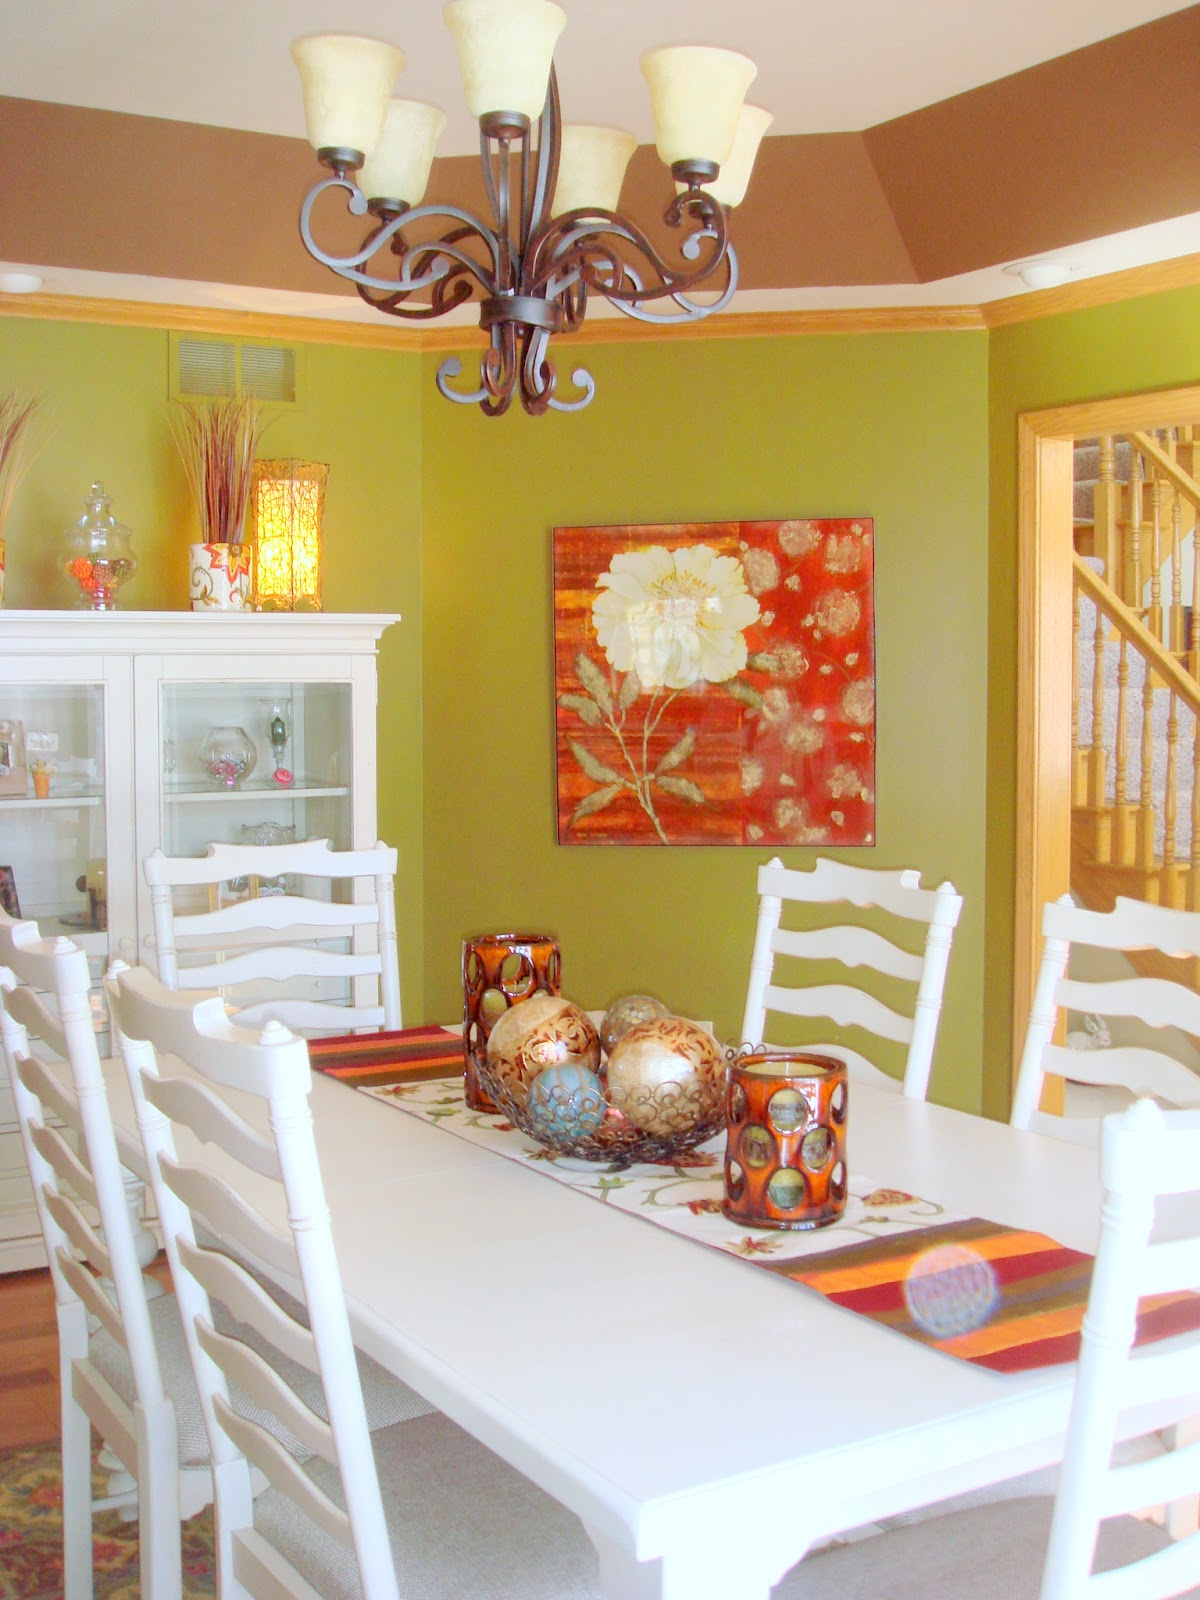 Creative Spaces Interior Design and Home Staging: Restaurant